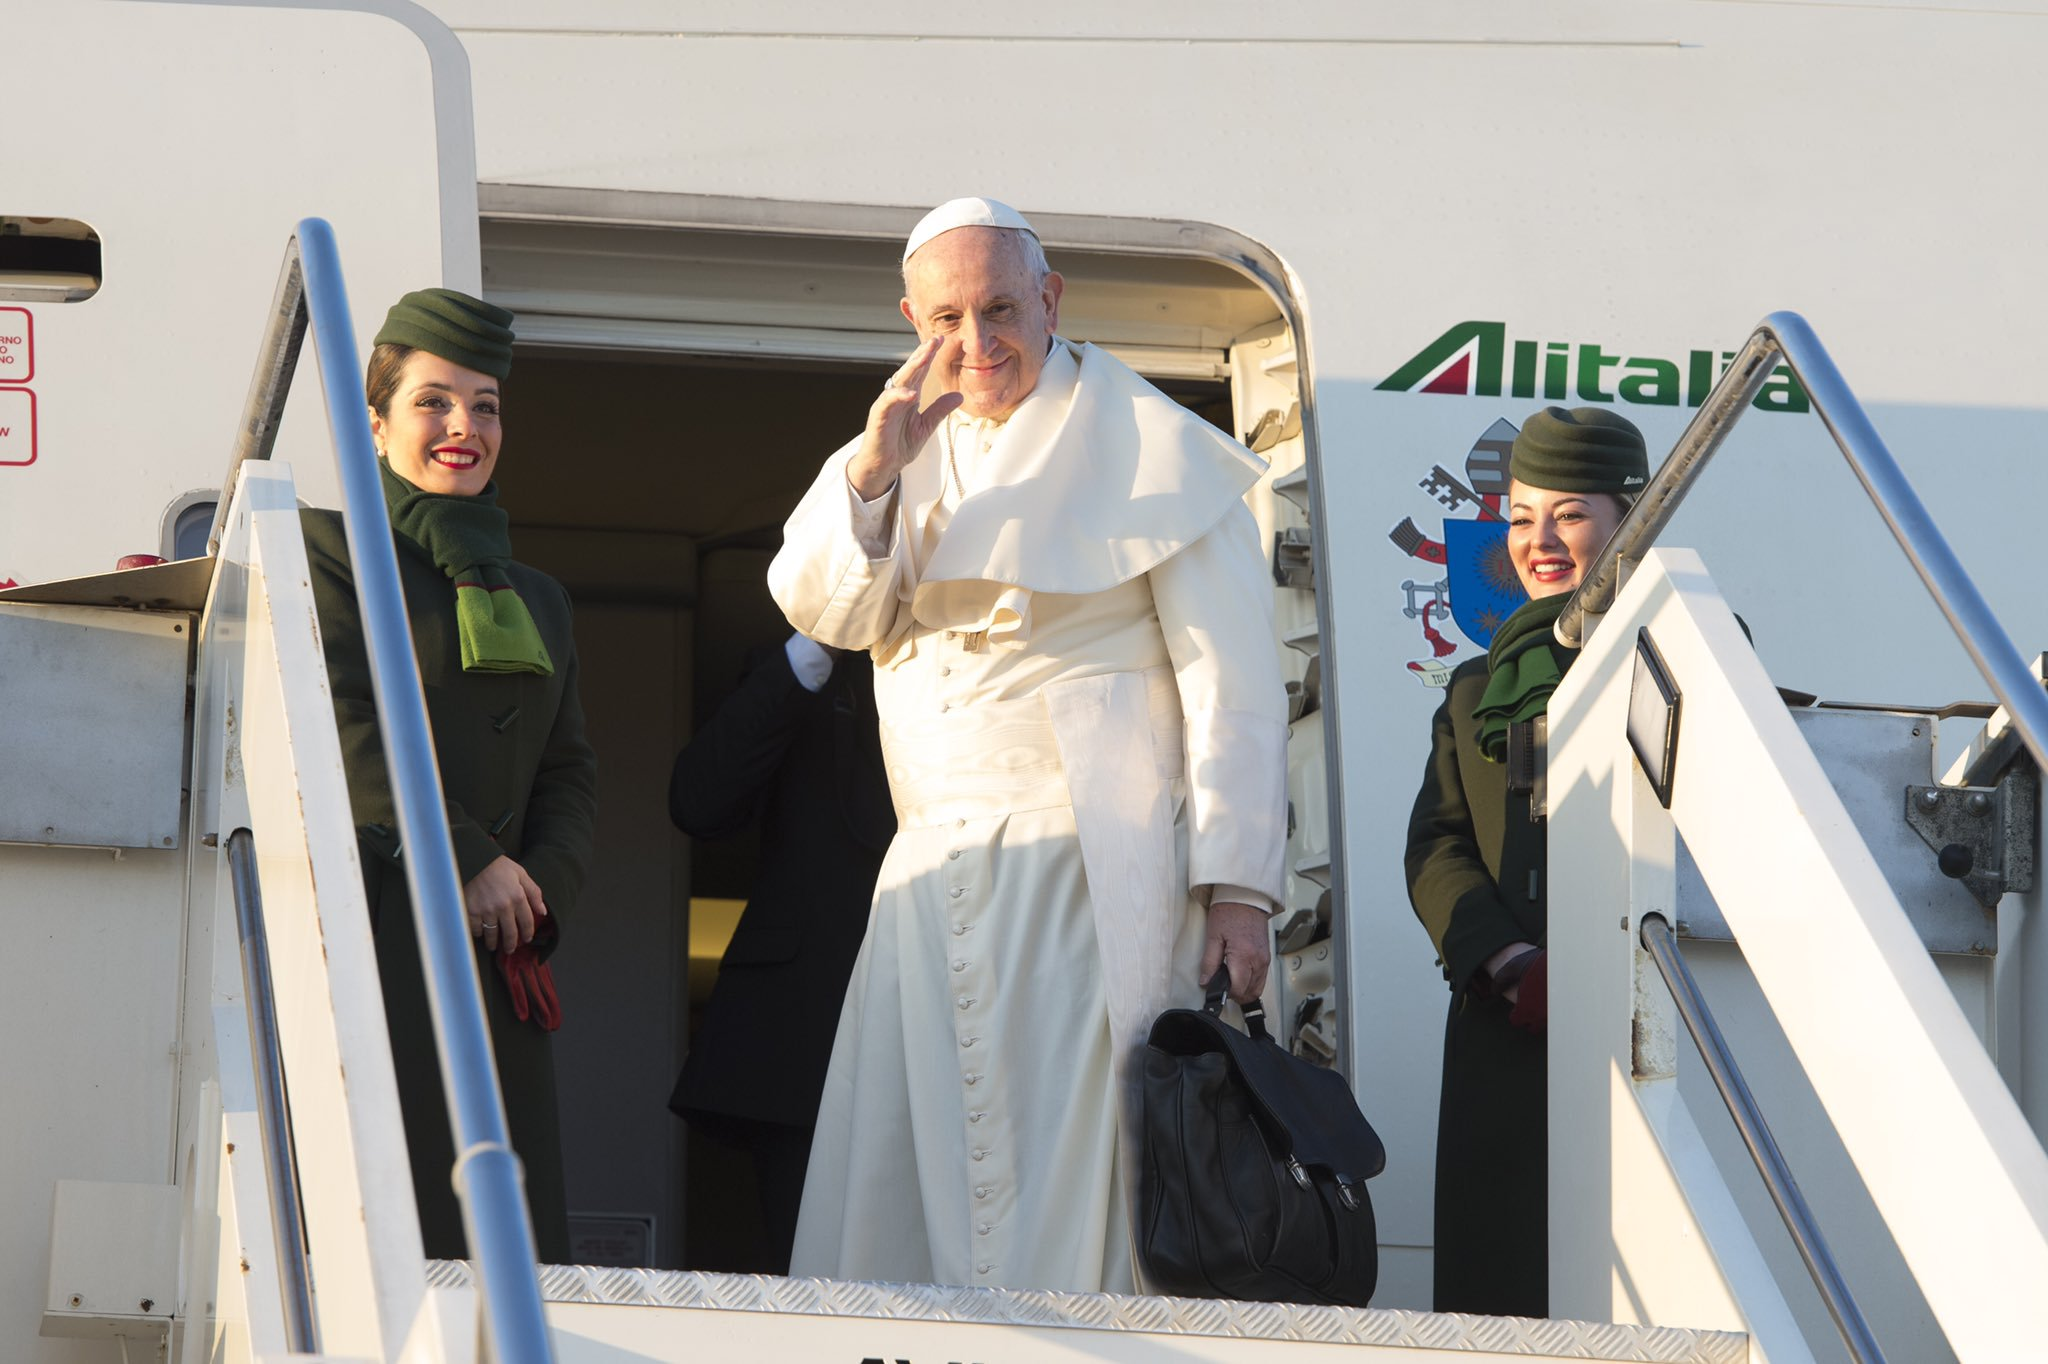 It's Official: Pope Francis Will Visit Japan & Thailand - ZENIT - English